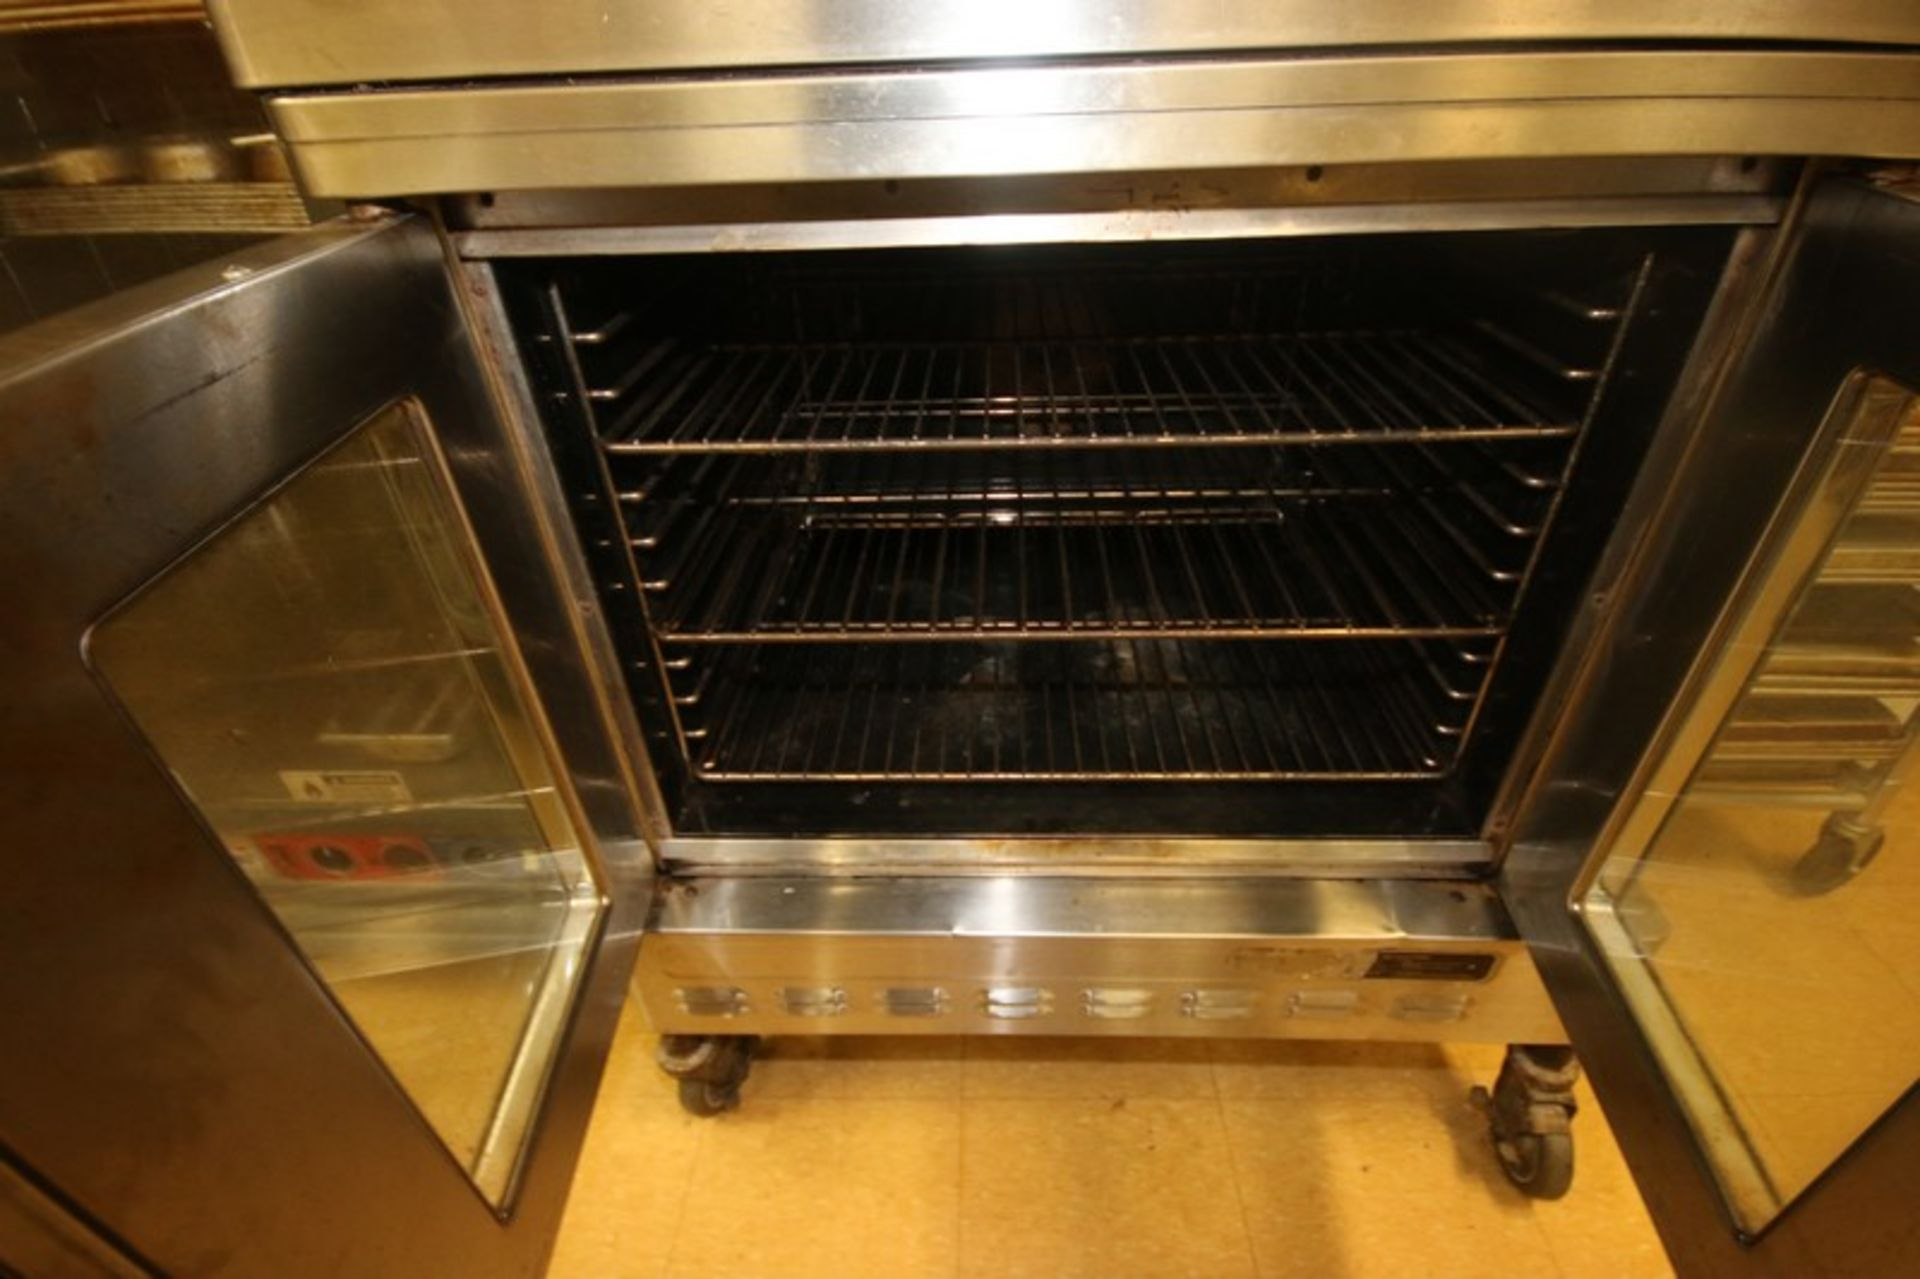 Blodgett Double Deck S/S Oven, with (3) Internal Wire Shelves In Each Compartment, Mounted on - Image 5 of 5